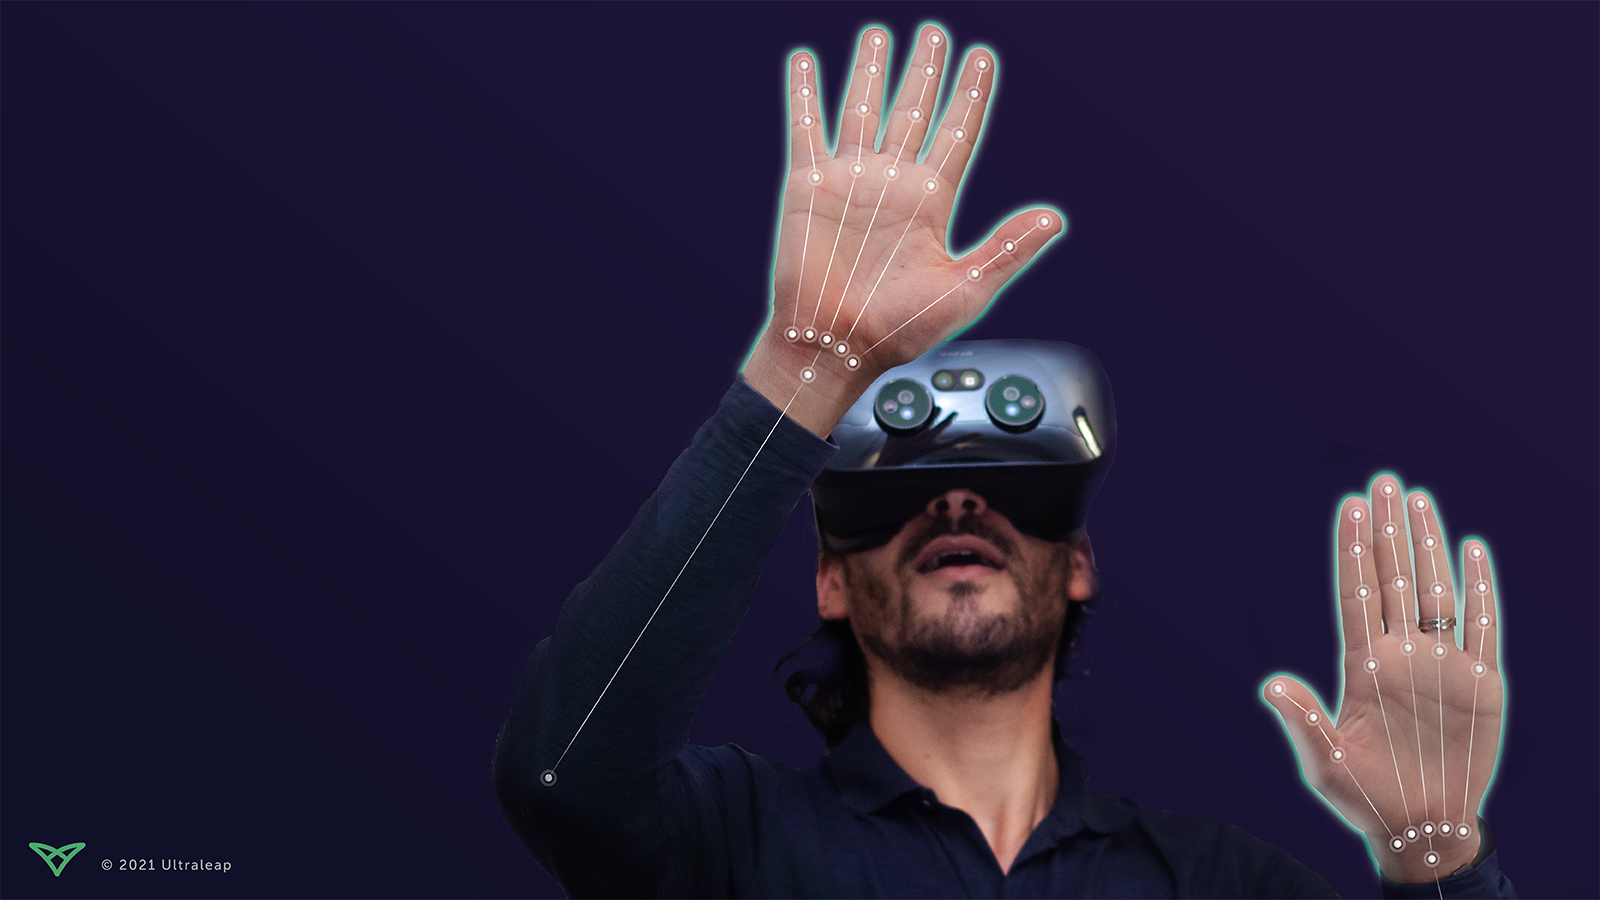 Man wearing Varjo XR3 headset with Ultraleap's vr hand tracking